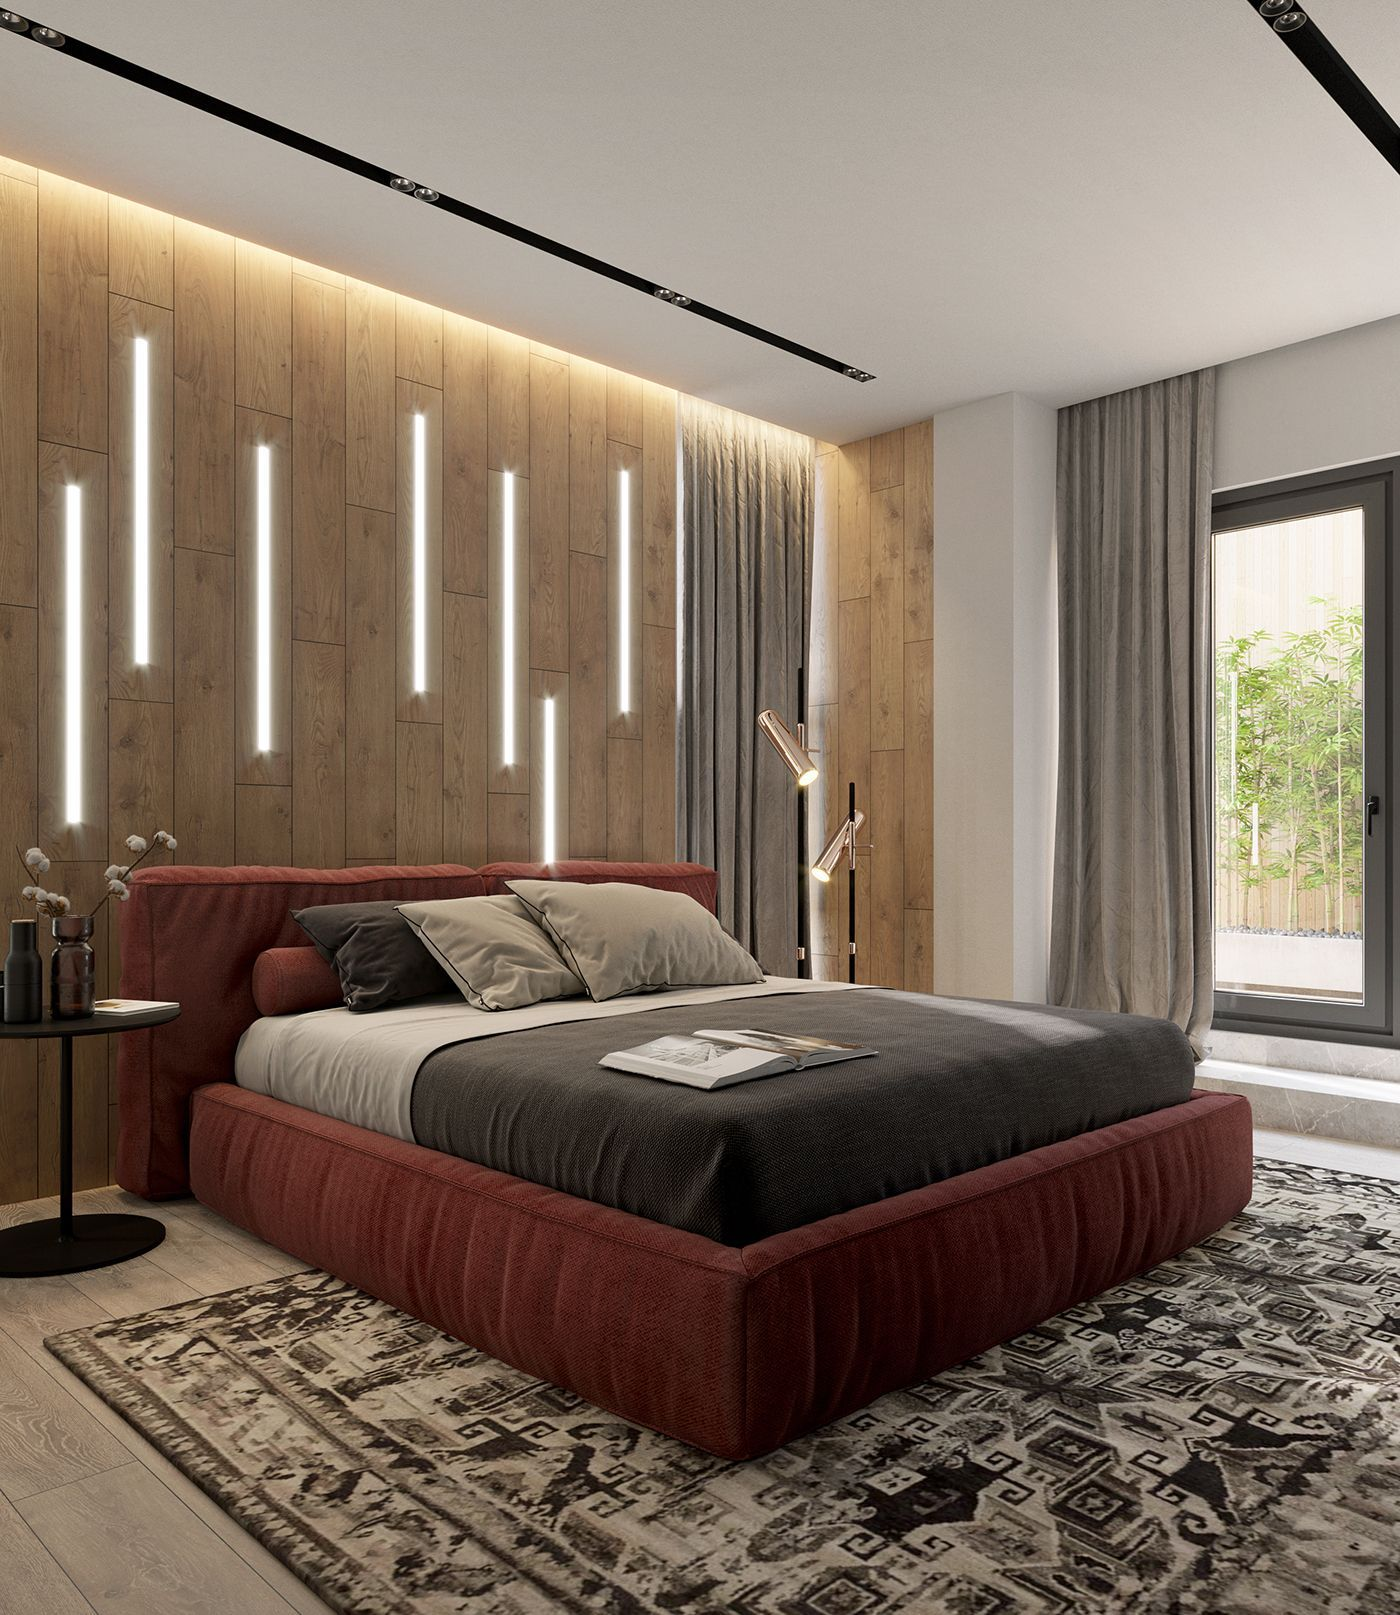 35 Best Bedroom Ideas Are Simple And Fun Pandriva Modern Bedroom Interior Bedroom Bed Design Bed Design Modern Interior bedroom decoration images